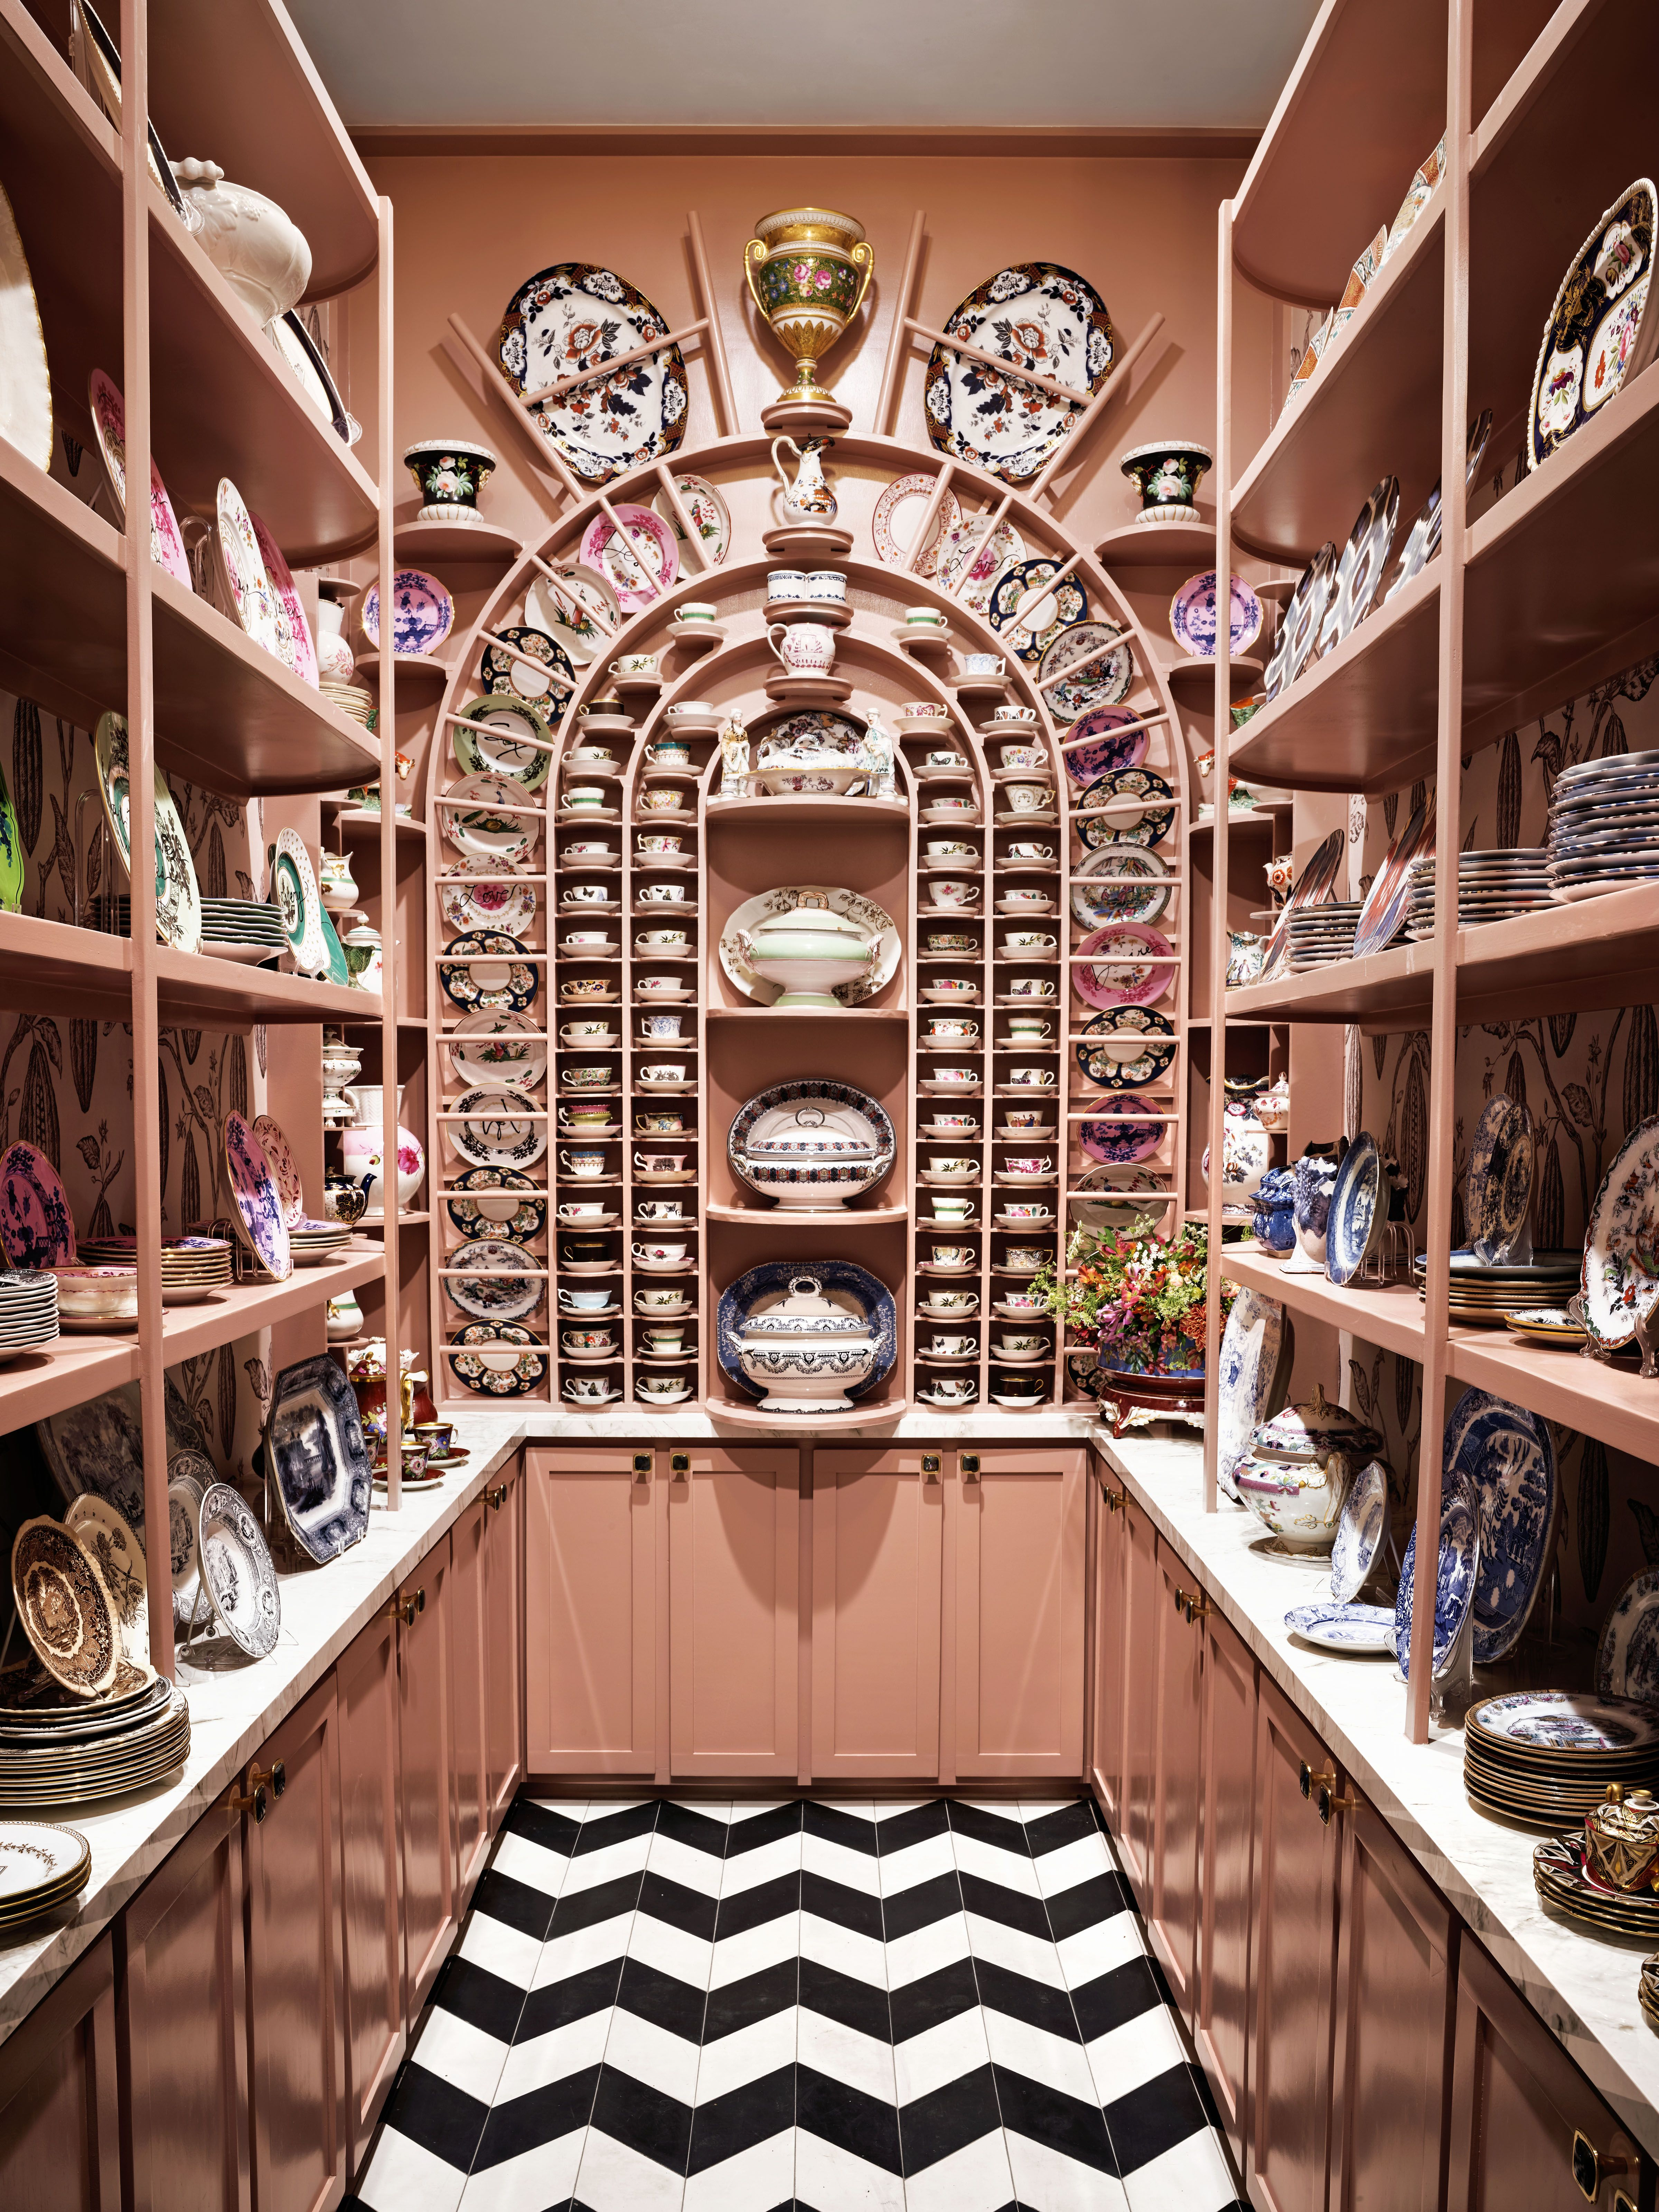 Michelle Nussbaumer's Fantastical Pink Pantry Is the Stuff of Legend